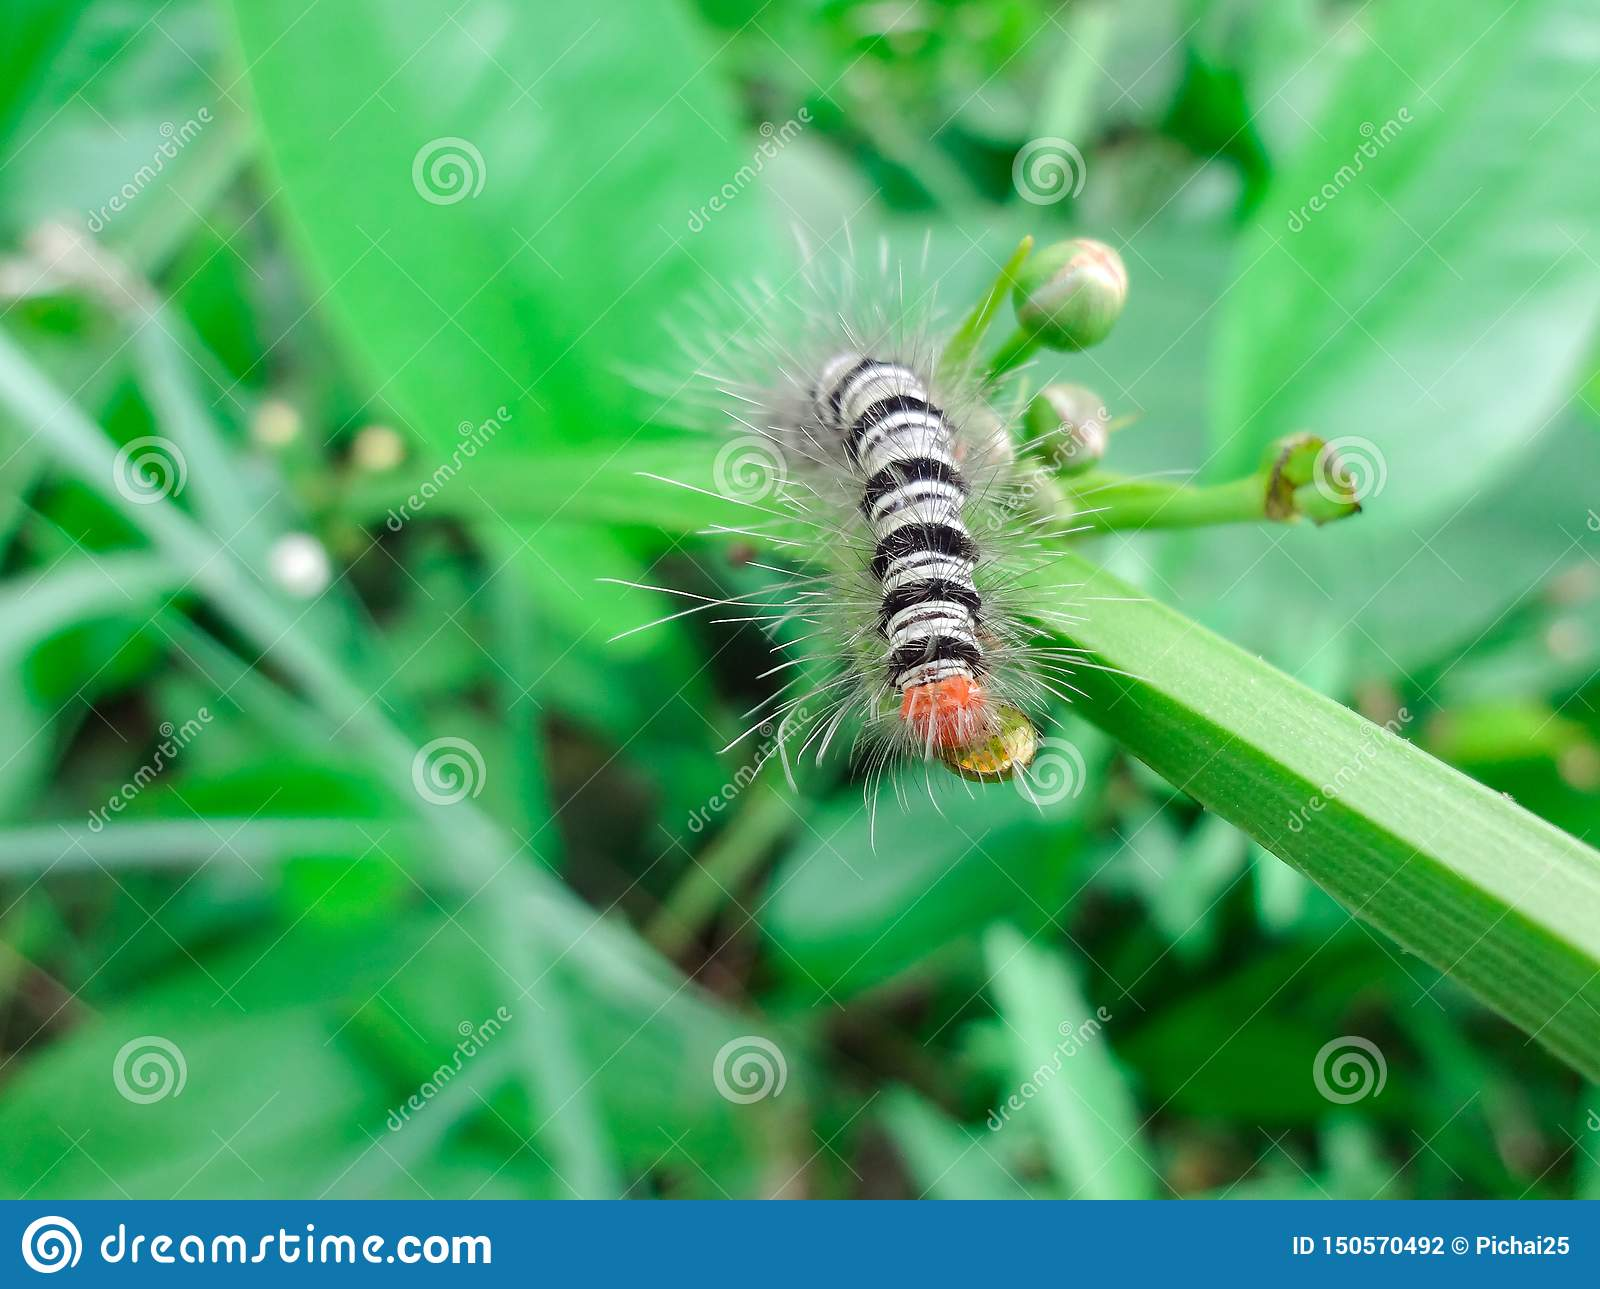 Black-and-white caterpillar Eating green flowers that are not blooming